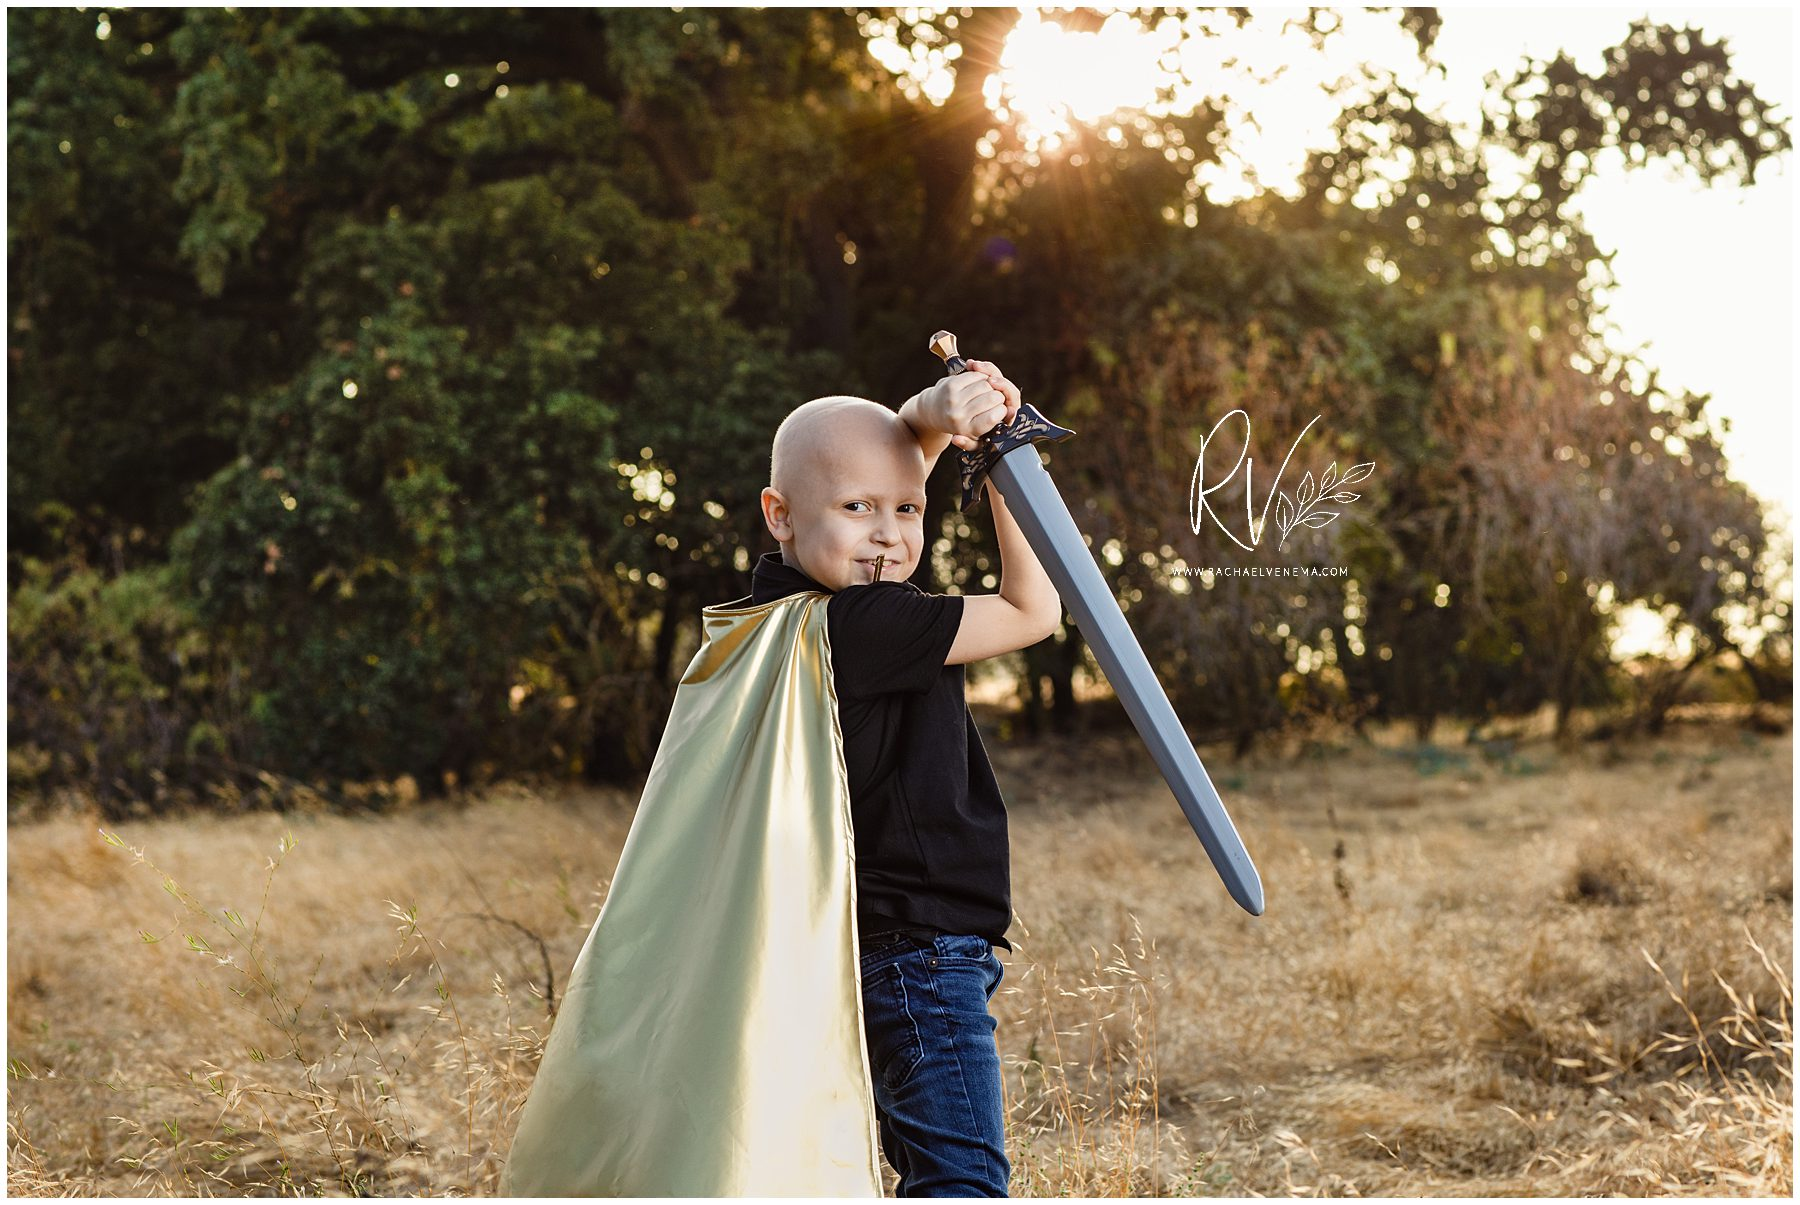 Ripon family photographer Rachael Venema captures young boy fighting cancer during his outdoor portrait session